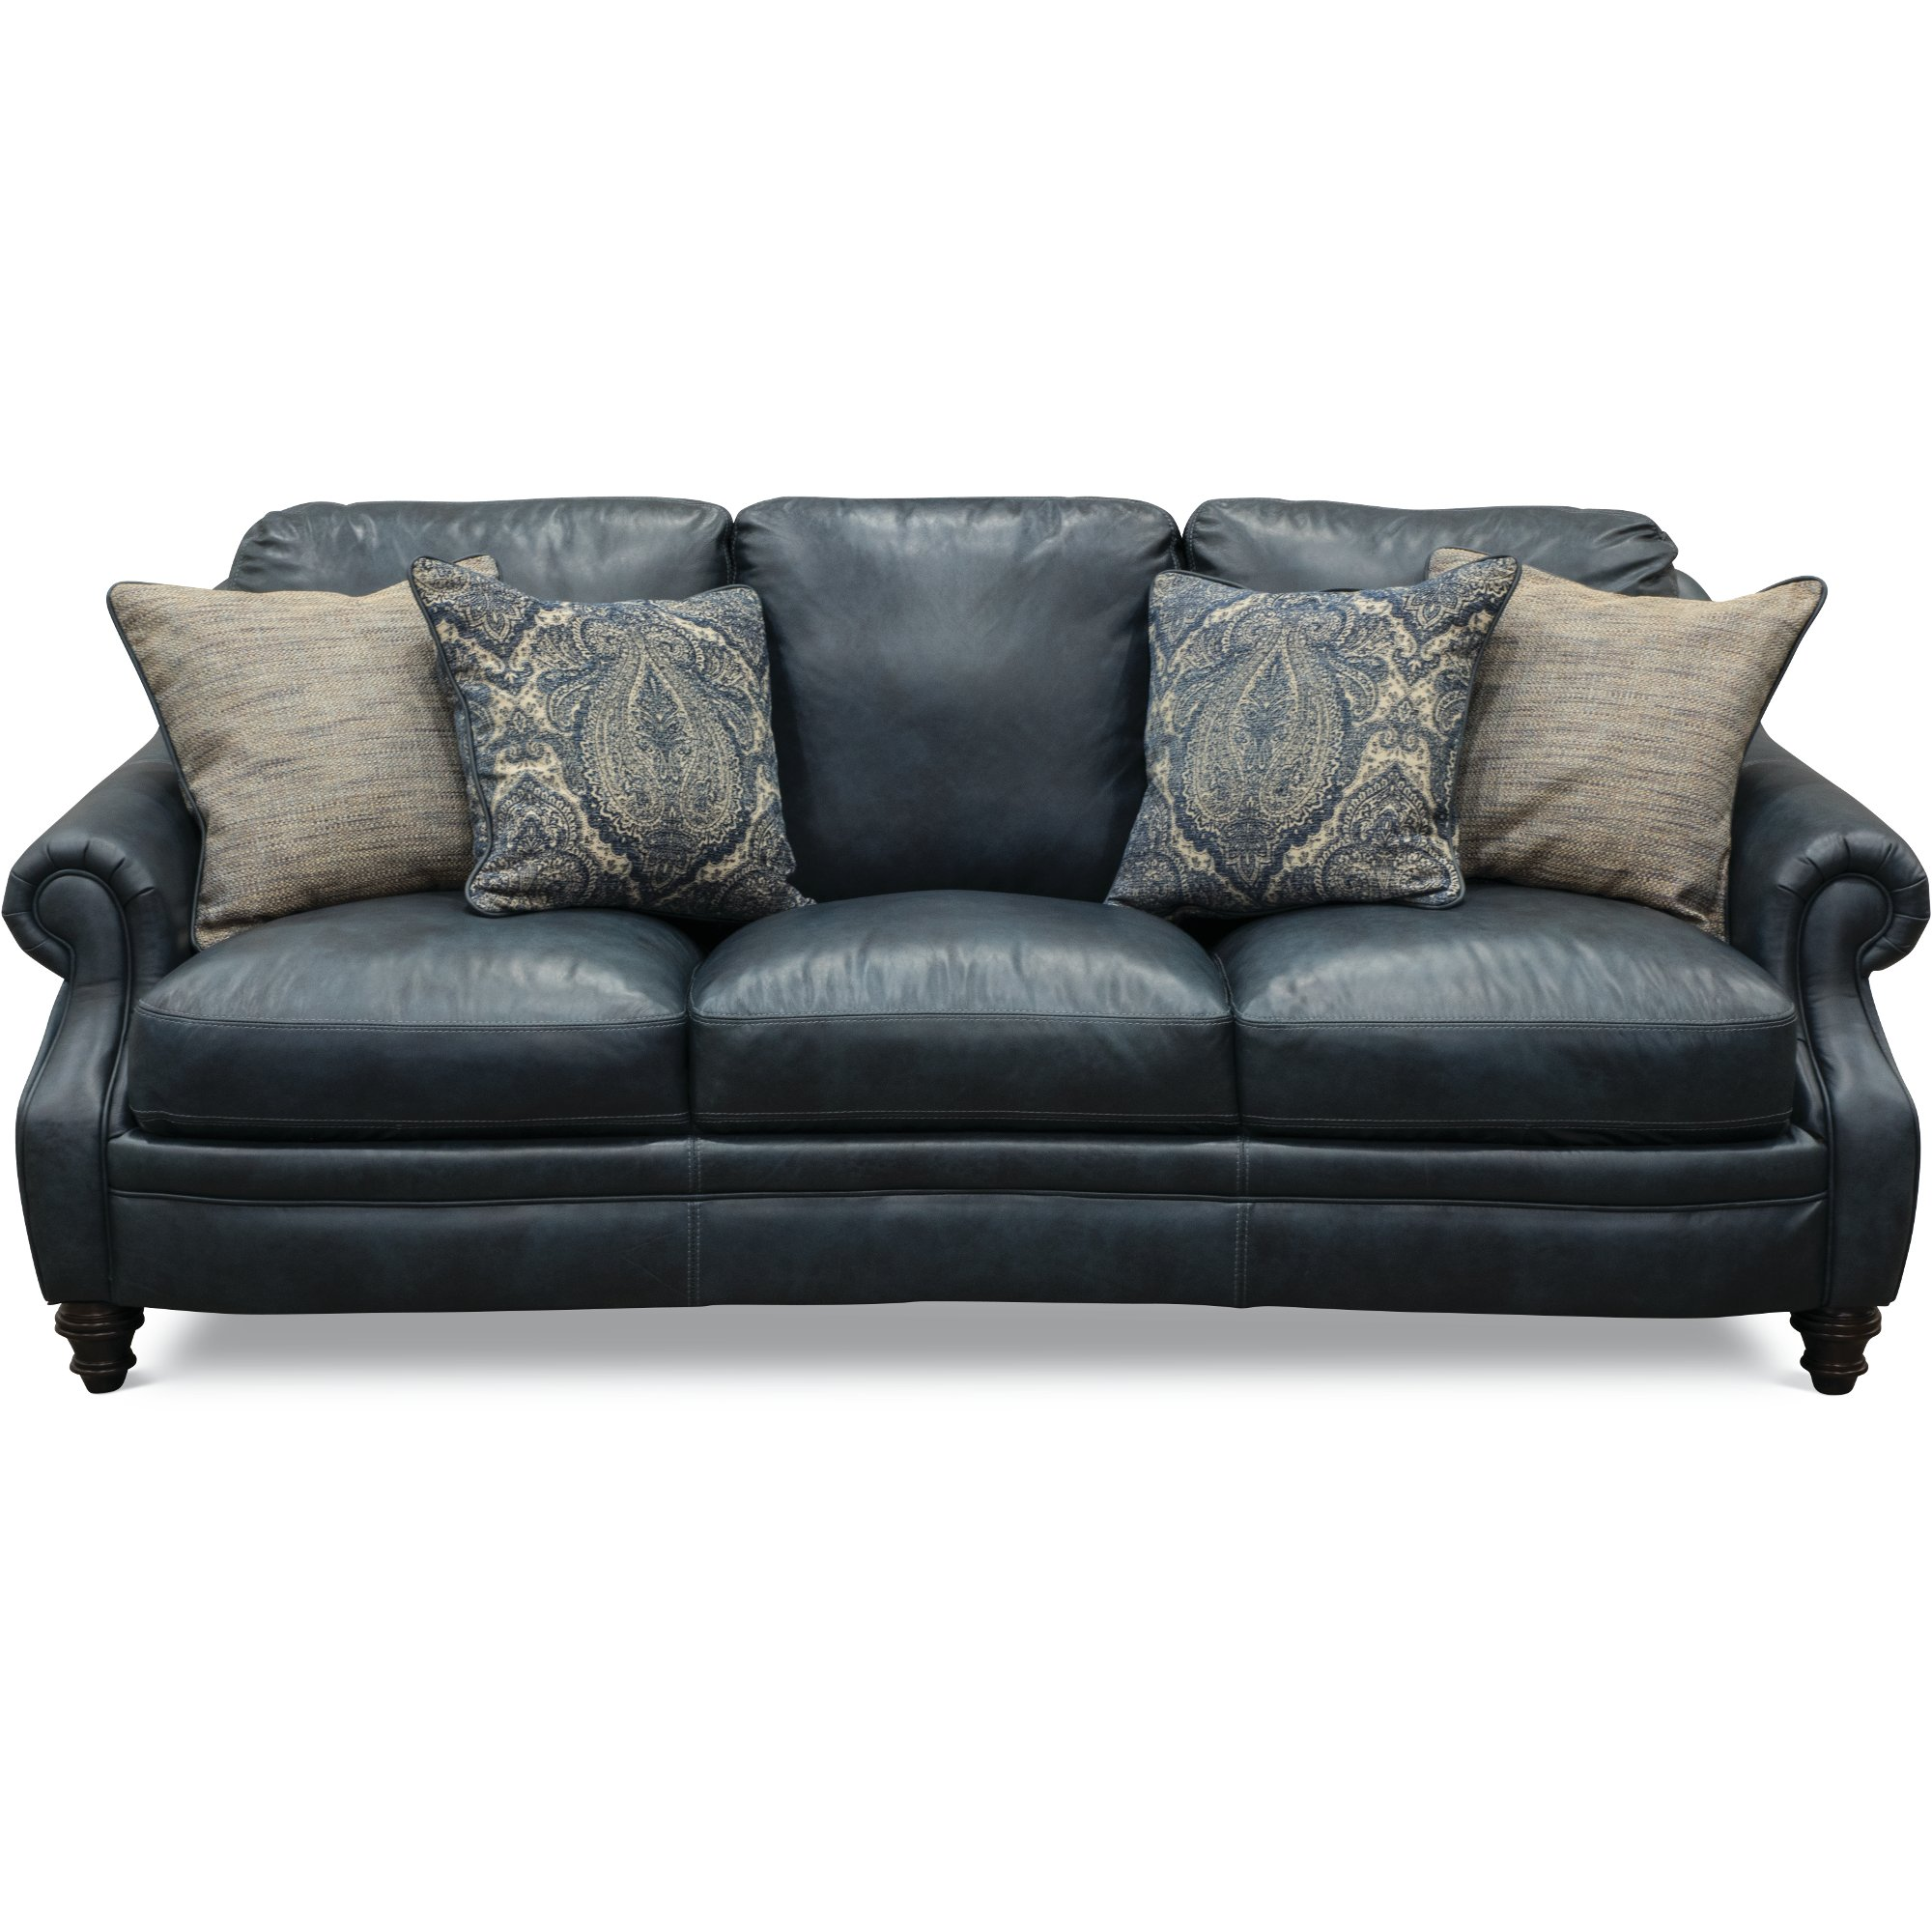 Captivating Classic Traditional Navy Blue Leather Sofa   Admiral | RC Willey Furniture  Store